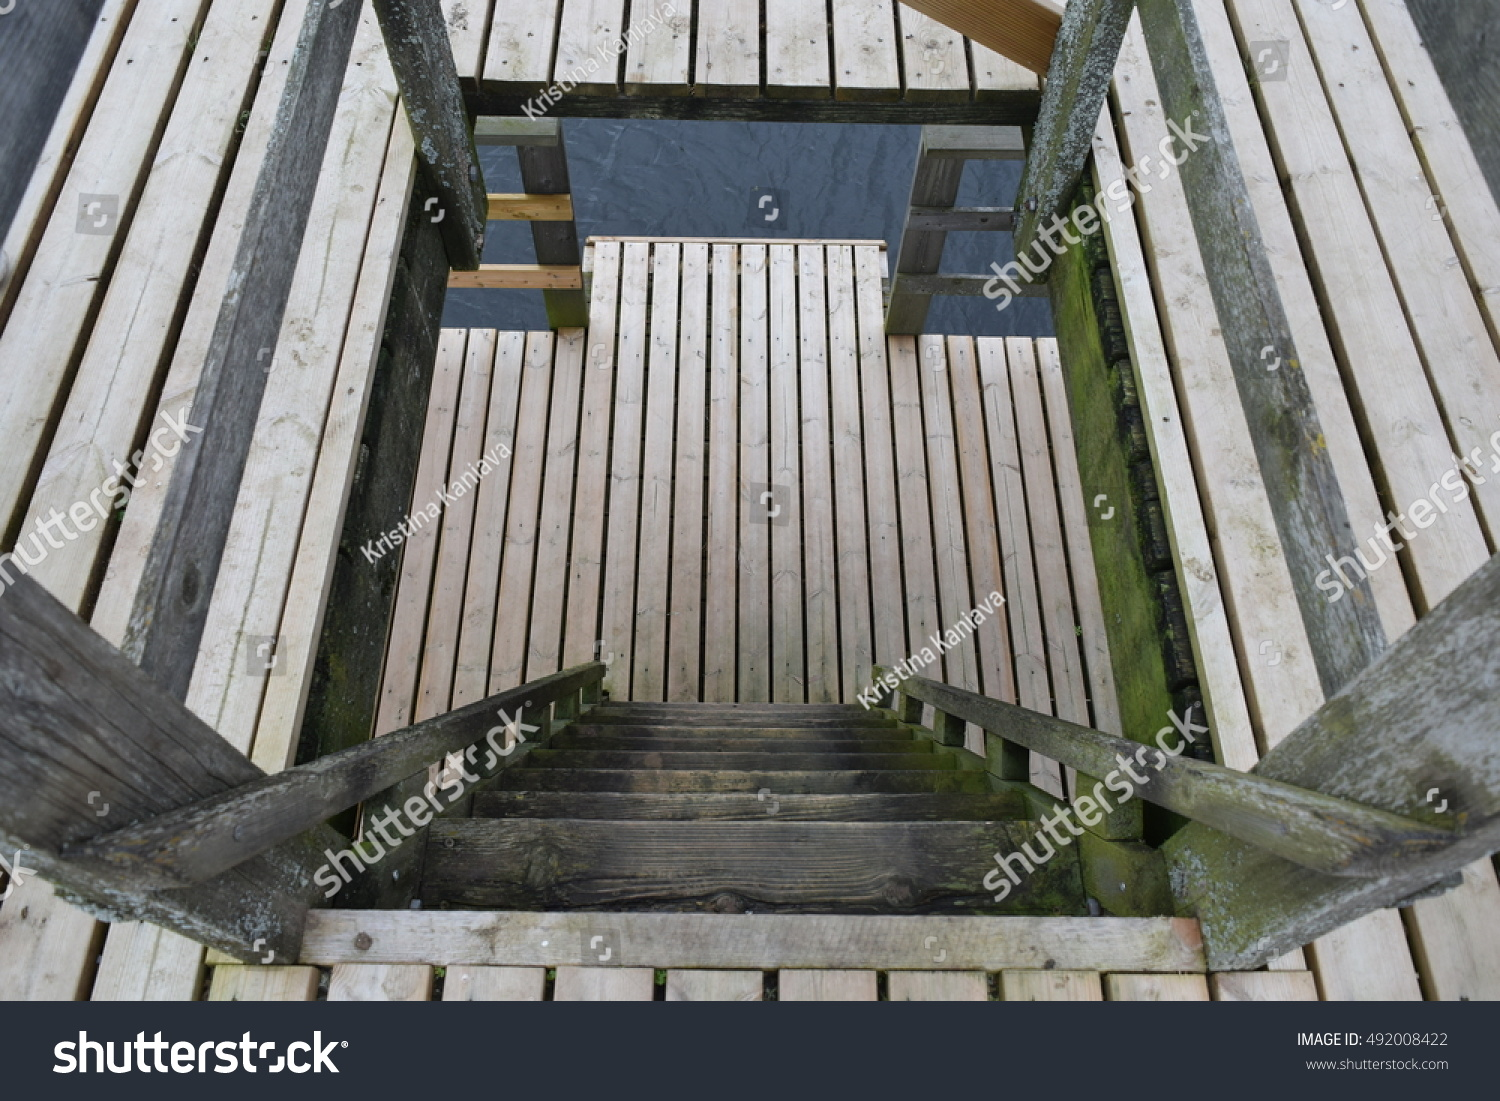 Staircase With Wooden Tower : Wooden staircase down descent tower stock photo